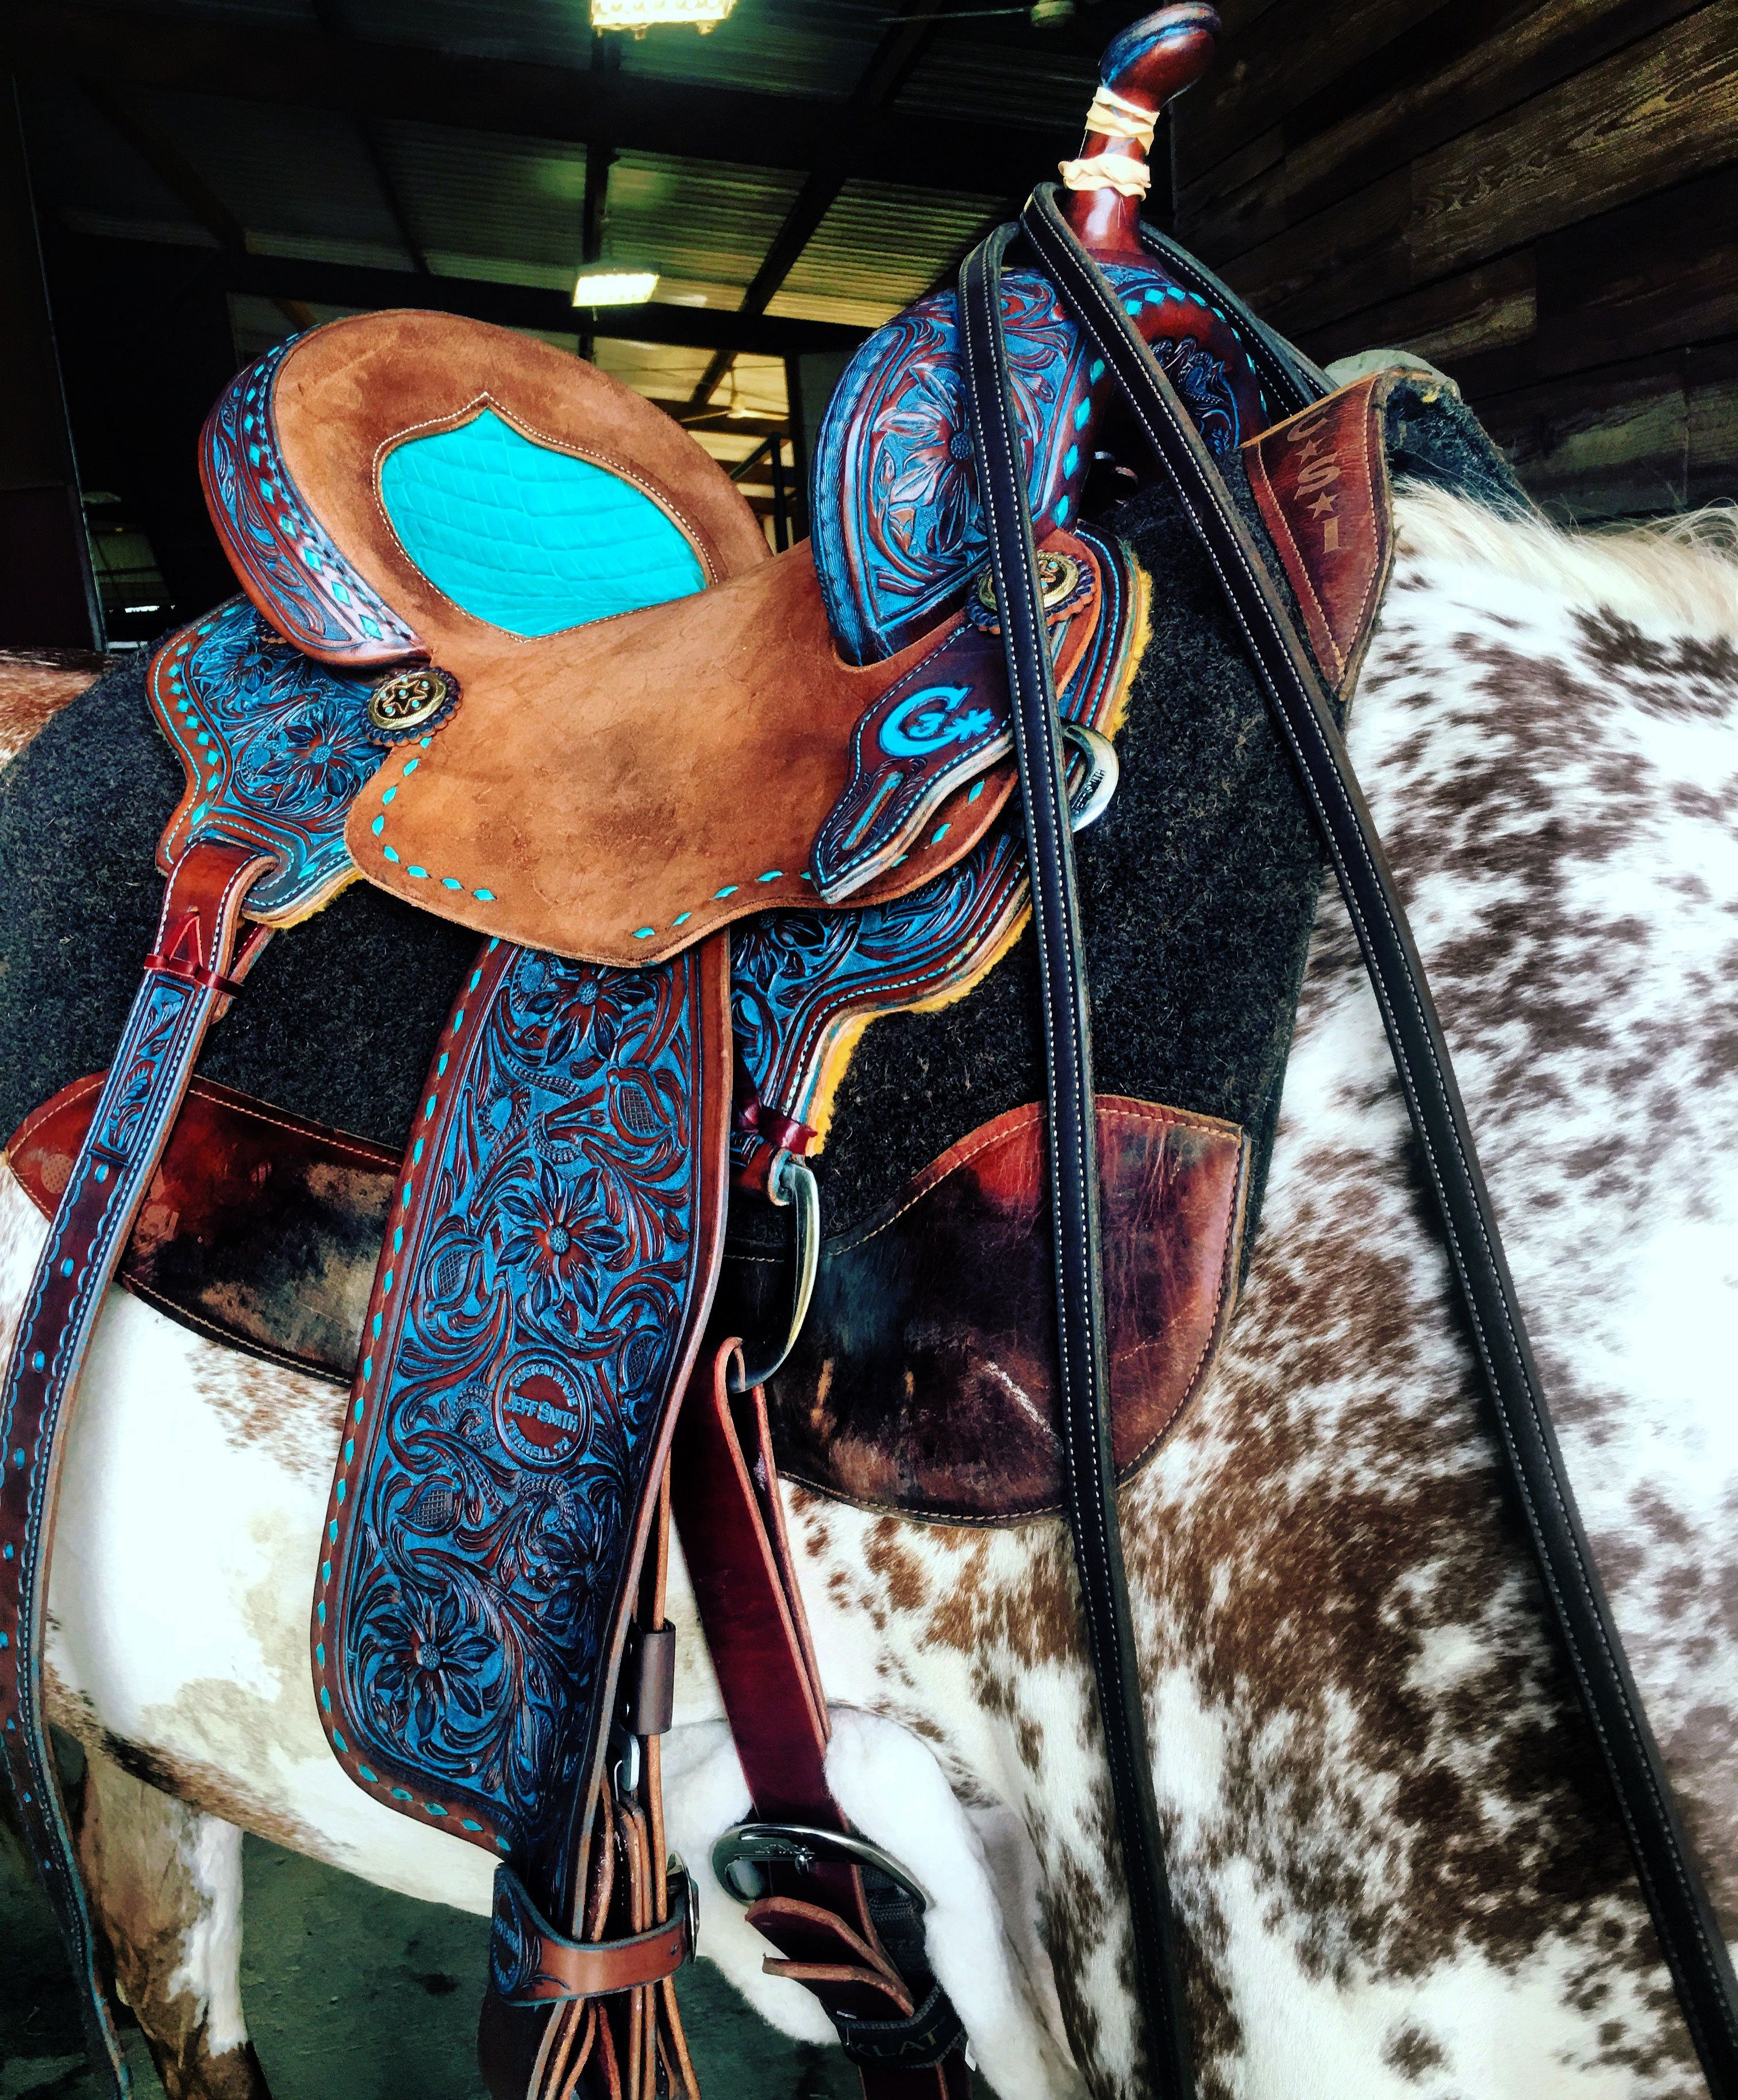 I M In Love With This Saddle Horse Tack Rodeo Horses Tack Horse Saddles